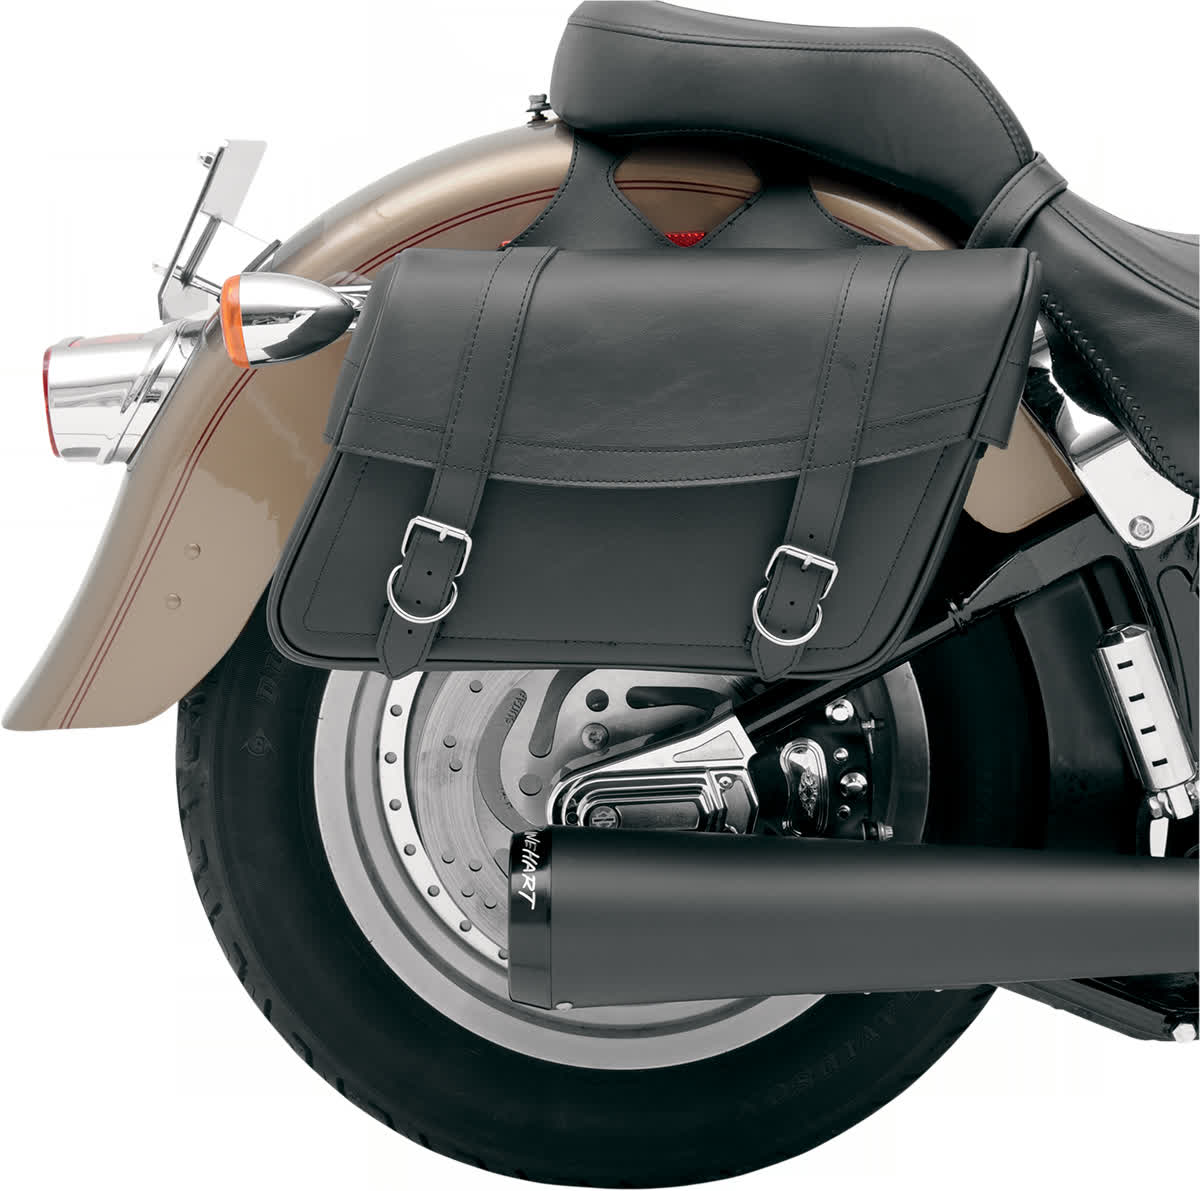 Saddlemen X021-02-041 Highwayman Slant-Style Saddlebag